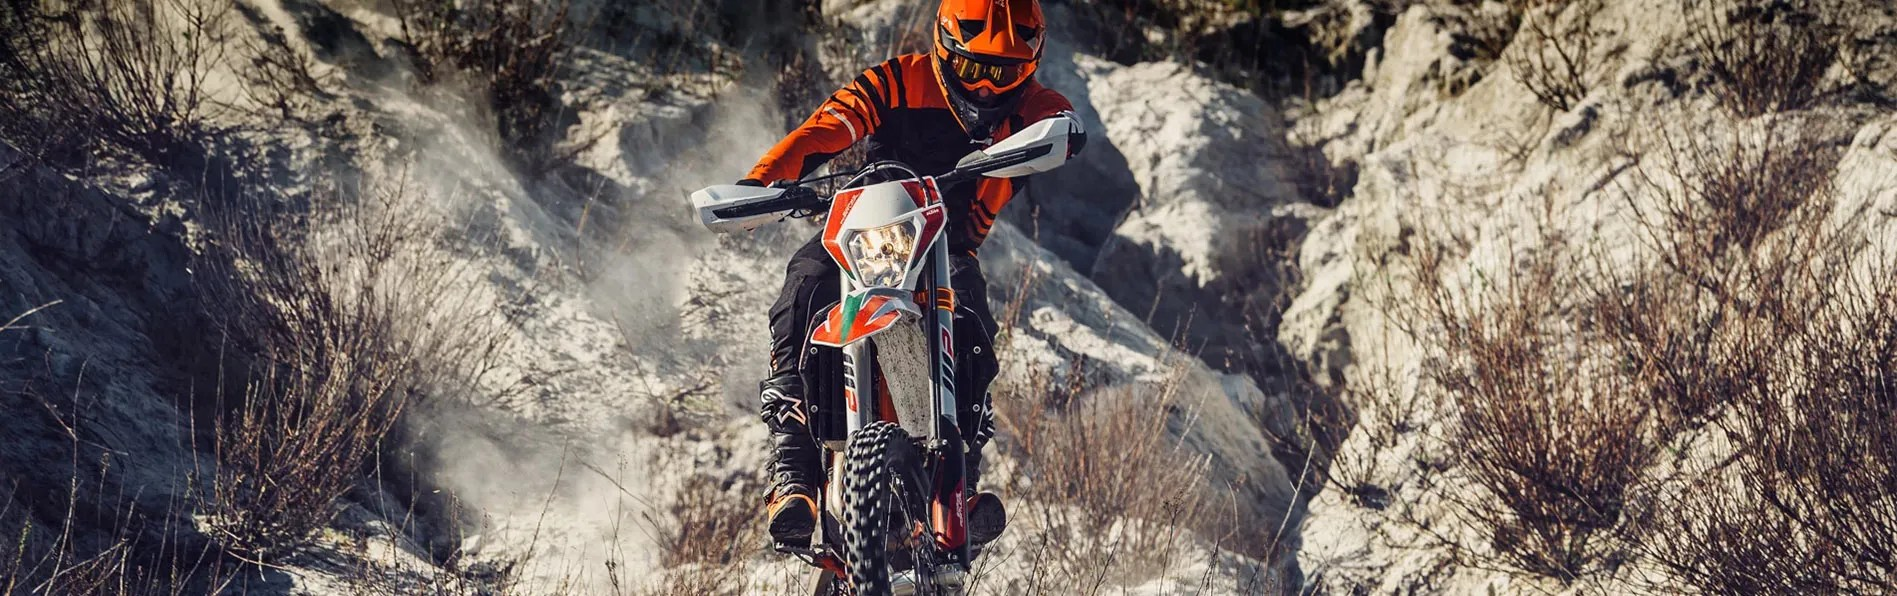 entete-KTM-250-EXC-SIX-DAYS-TPI-2020